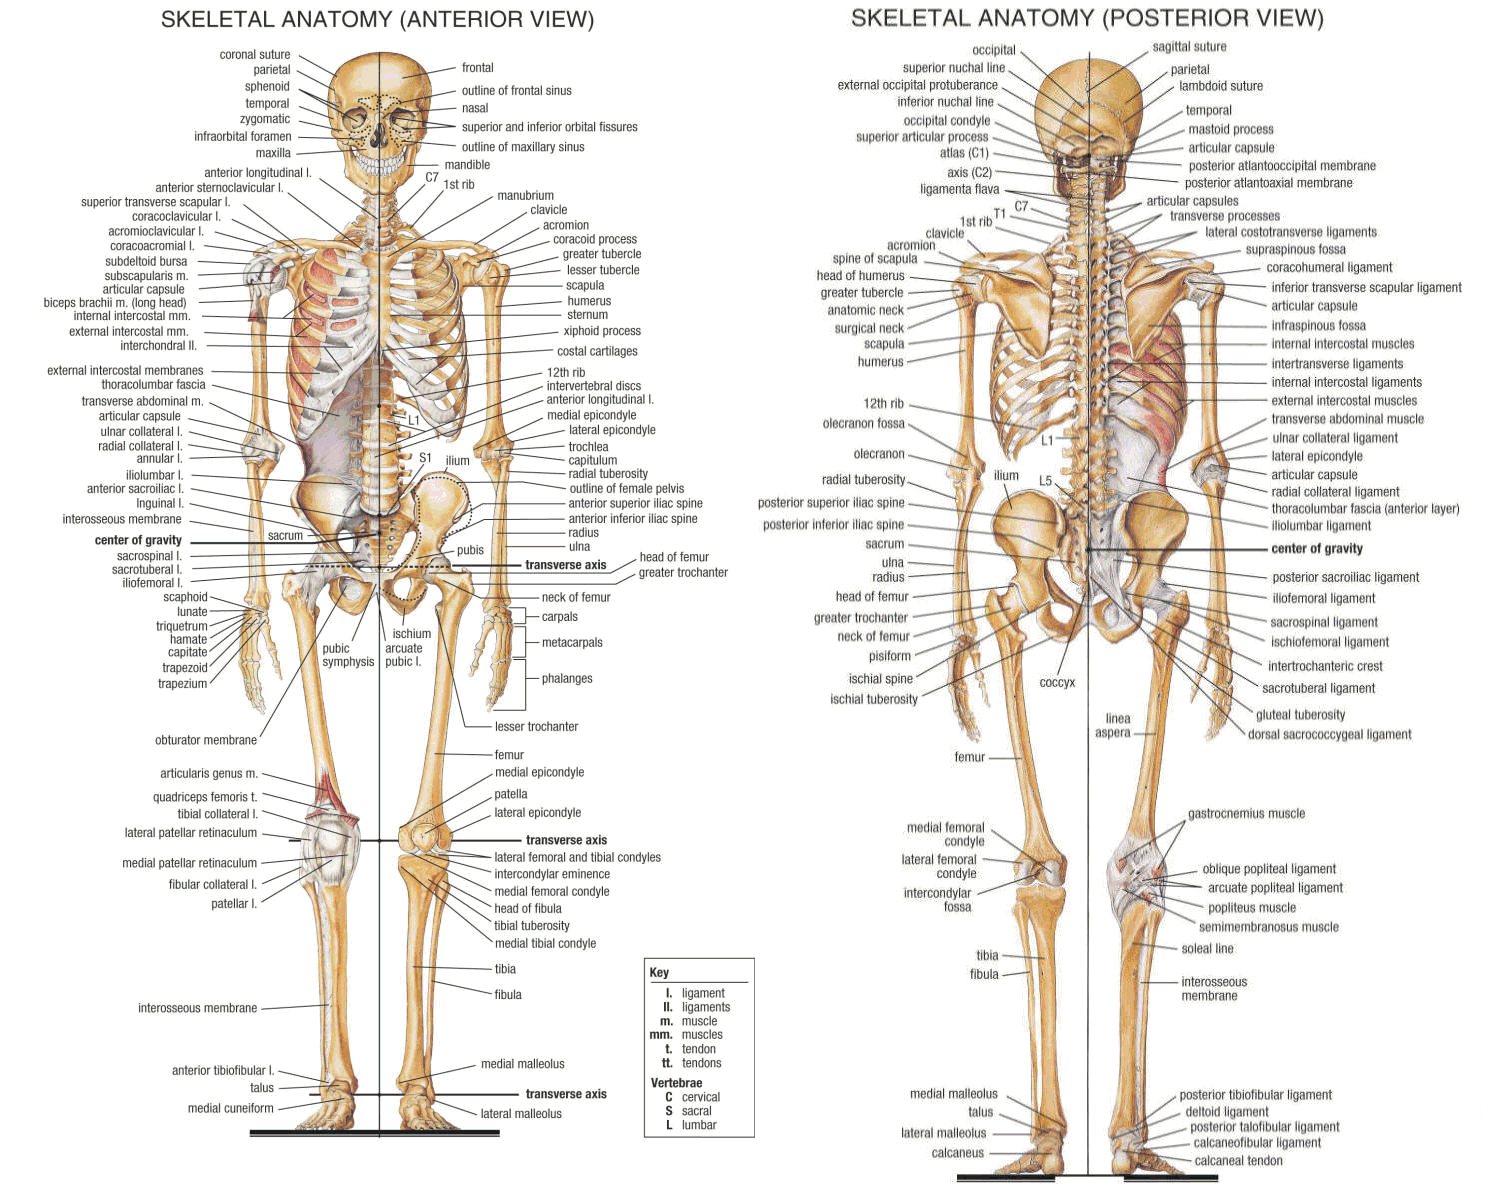 206 Bones Of The Human Skeleton But We Start With 270